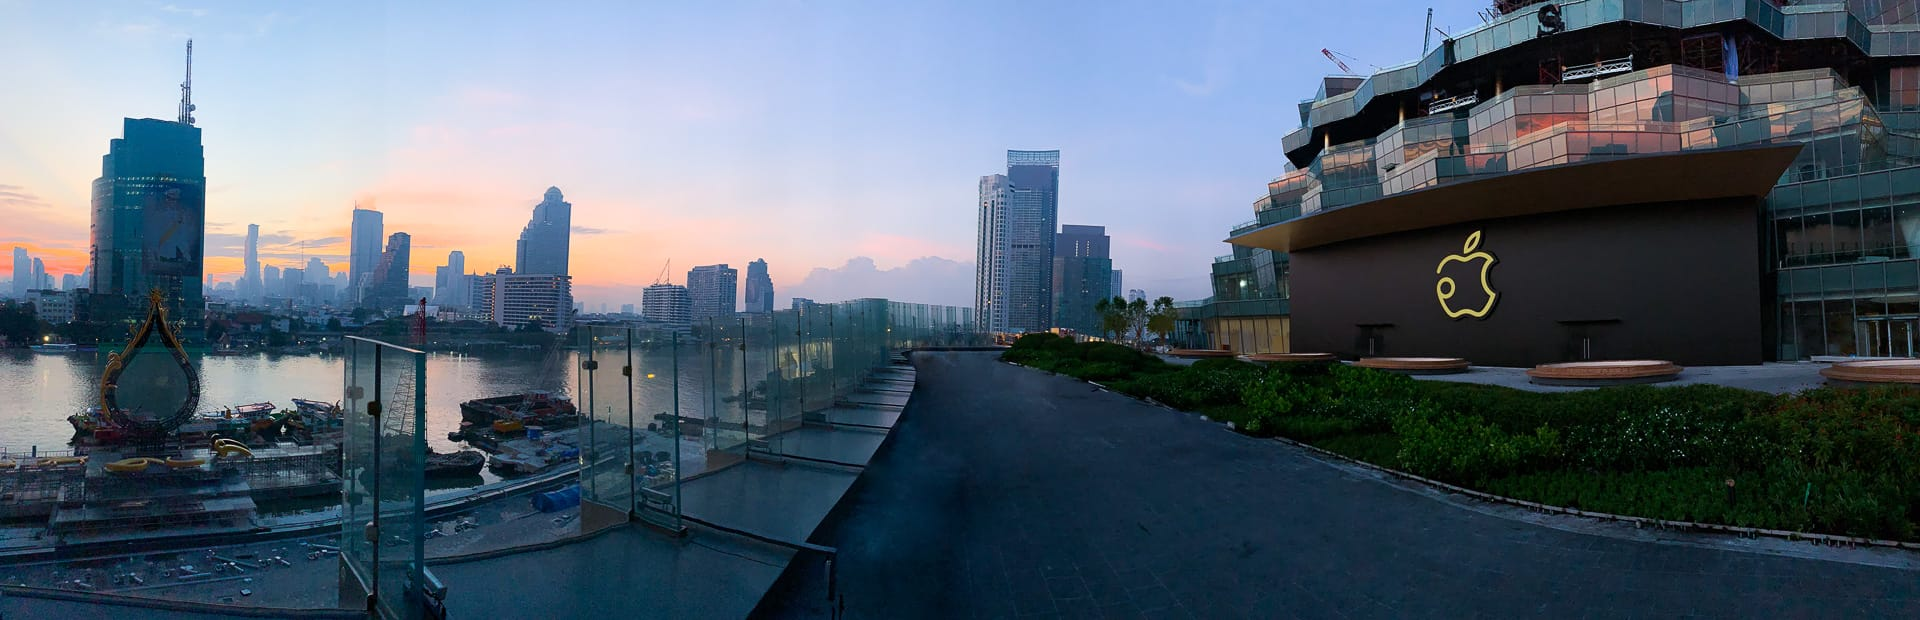 Apple Iconsiam 2